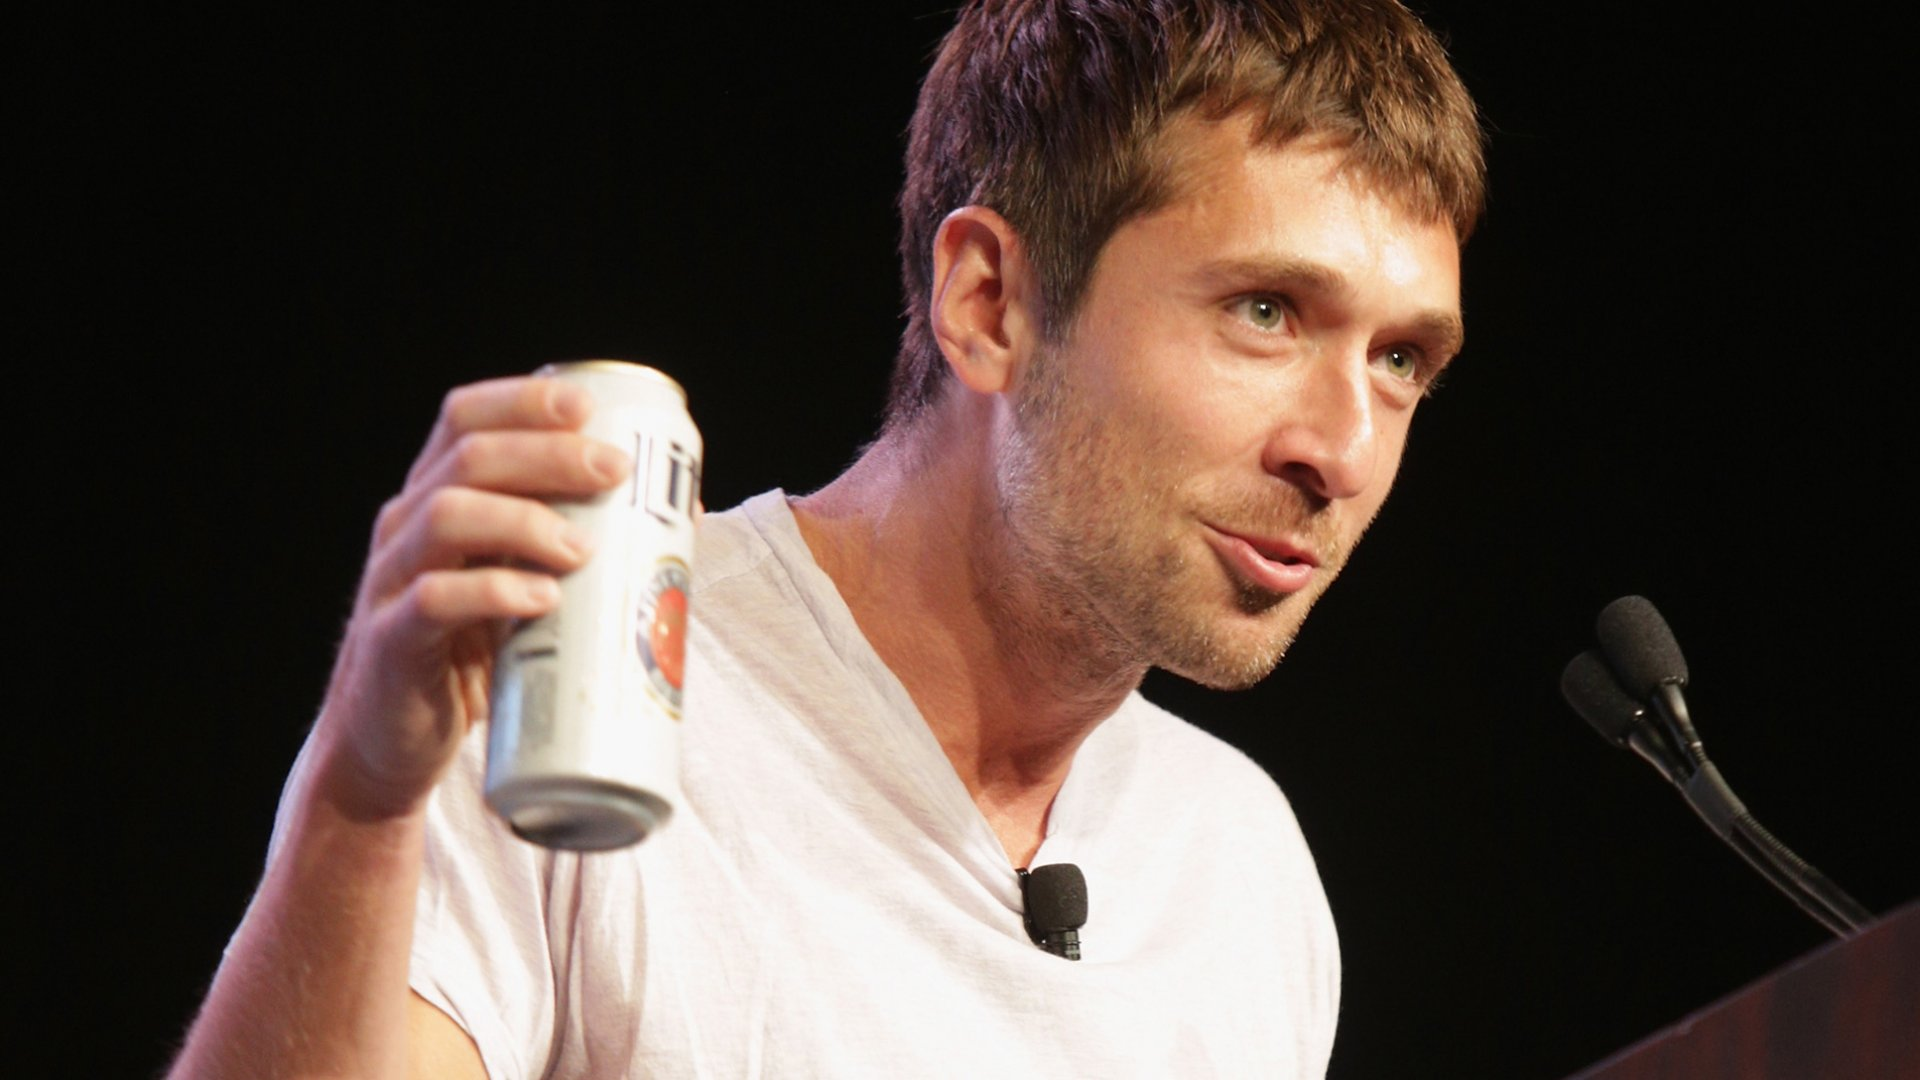 How Ben Lerer Succeeded Where So Many Others Failed